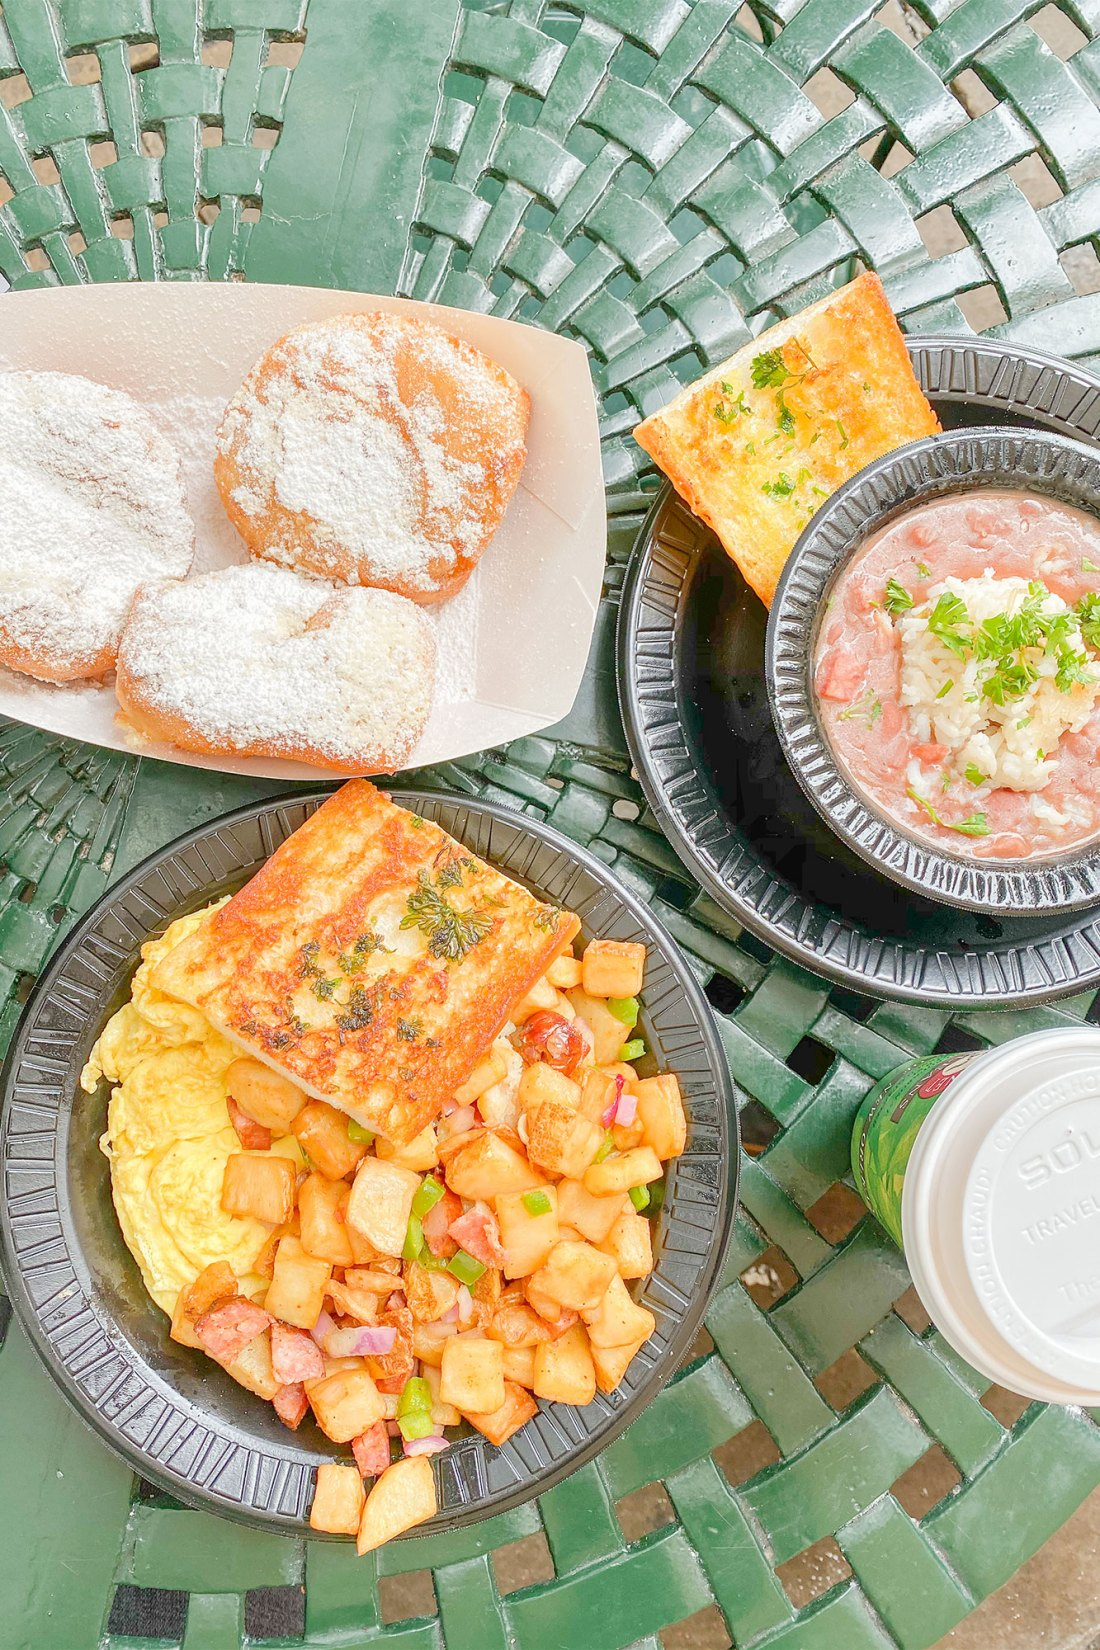 potatoes, eggs, toast, and beignets on table